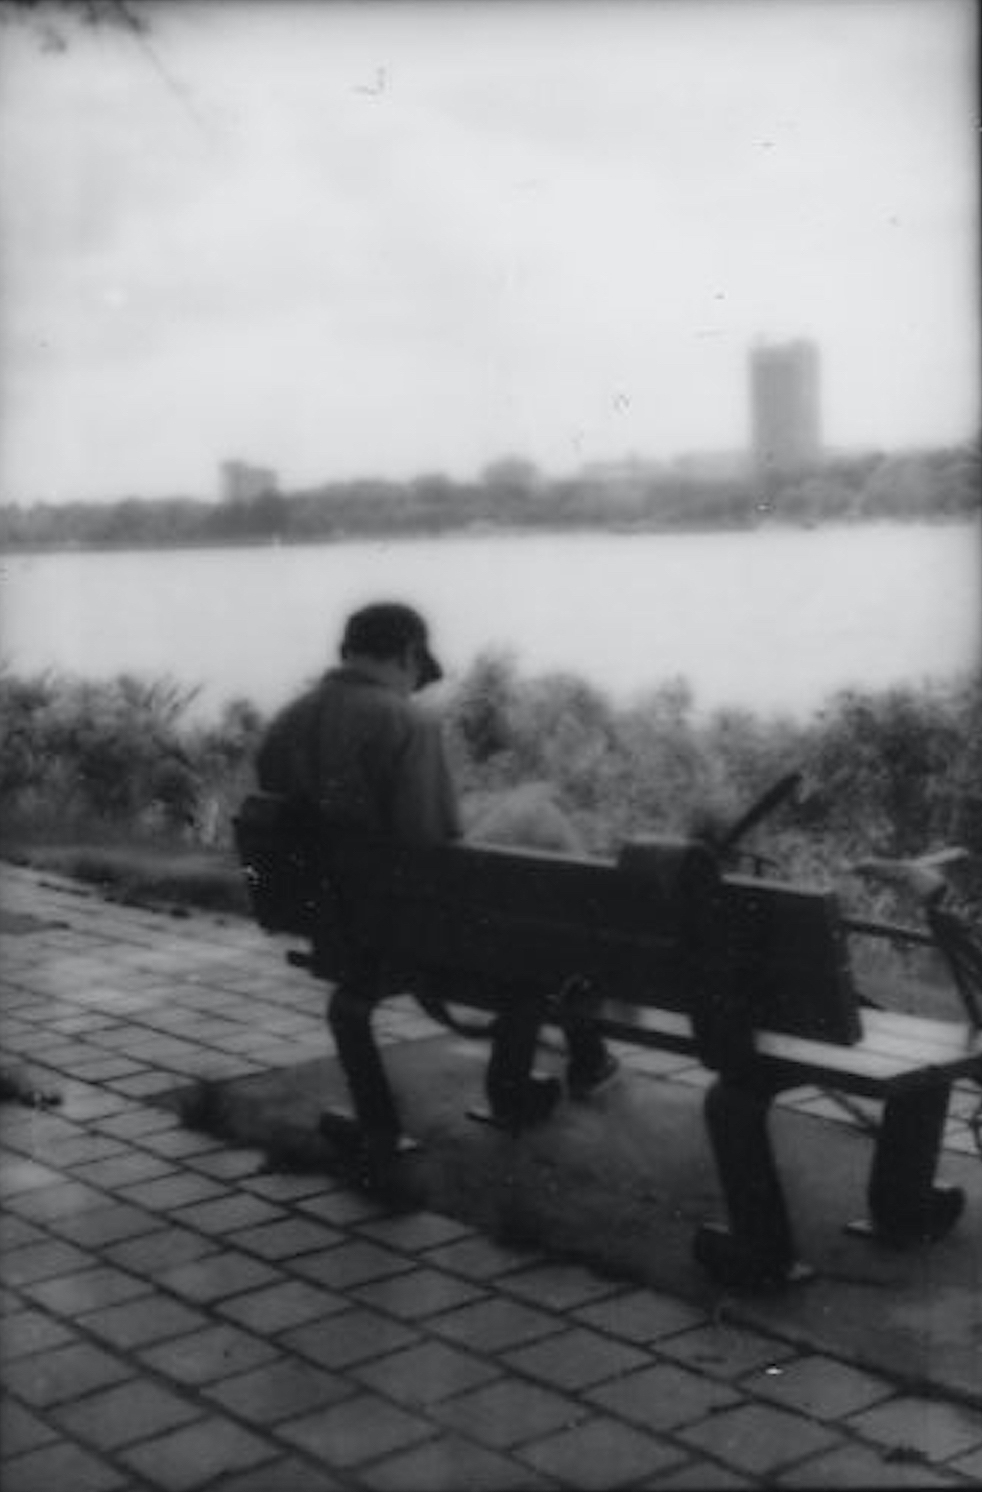 Black and white photo of a person sitting on a bench overlooking the Charles River. Photo taken by the author.